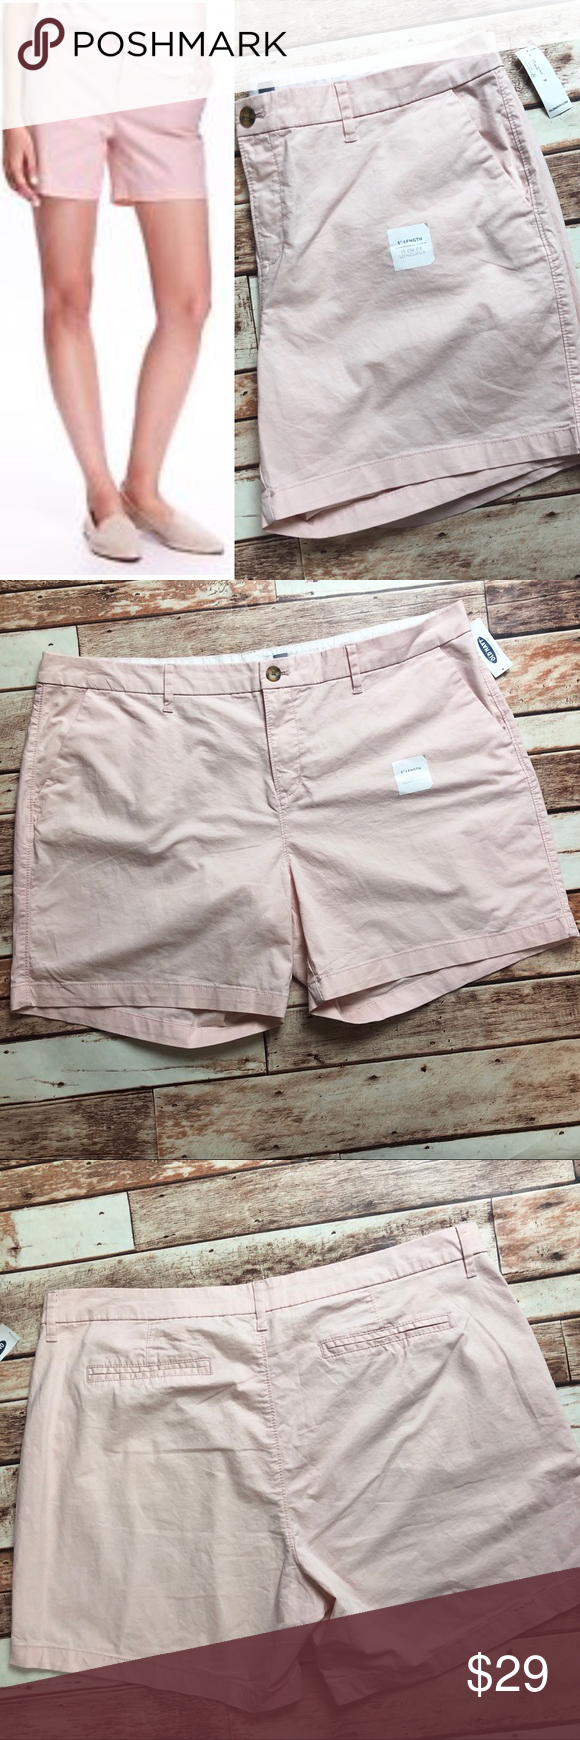 "Old Navy Light Pink 5"" inseam shorts NWT"